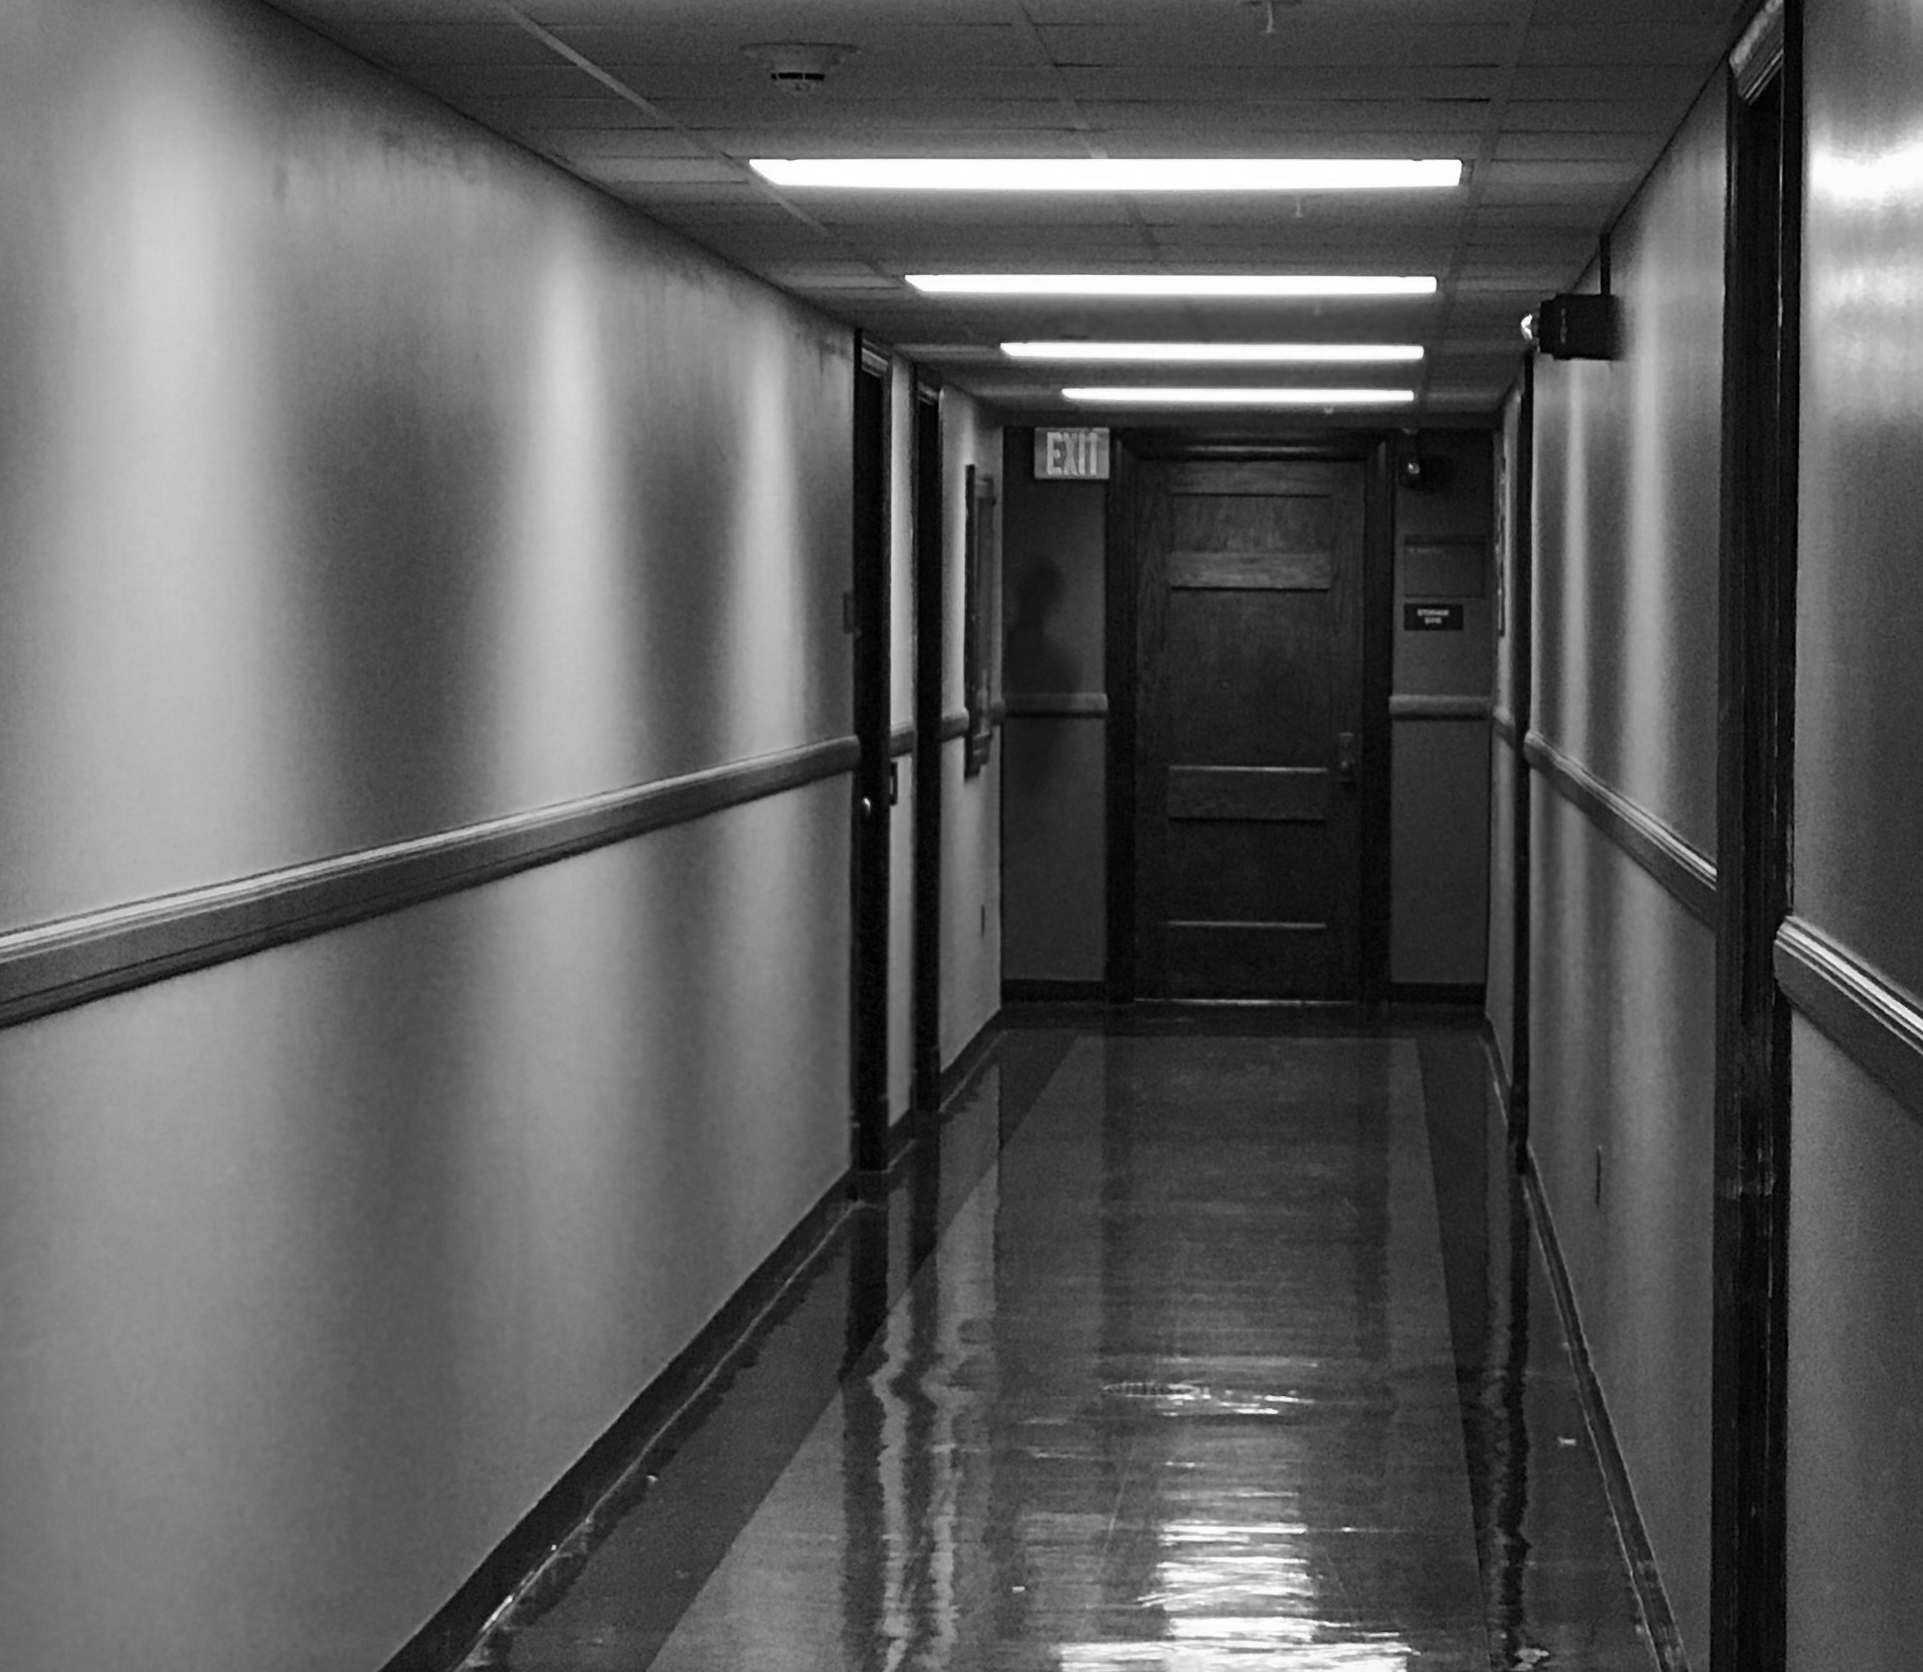 Image shows a hallway in a dorm room. At the end of the hallway is possibly a shadow person. Or photoshop.